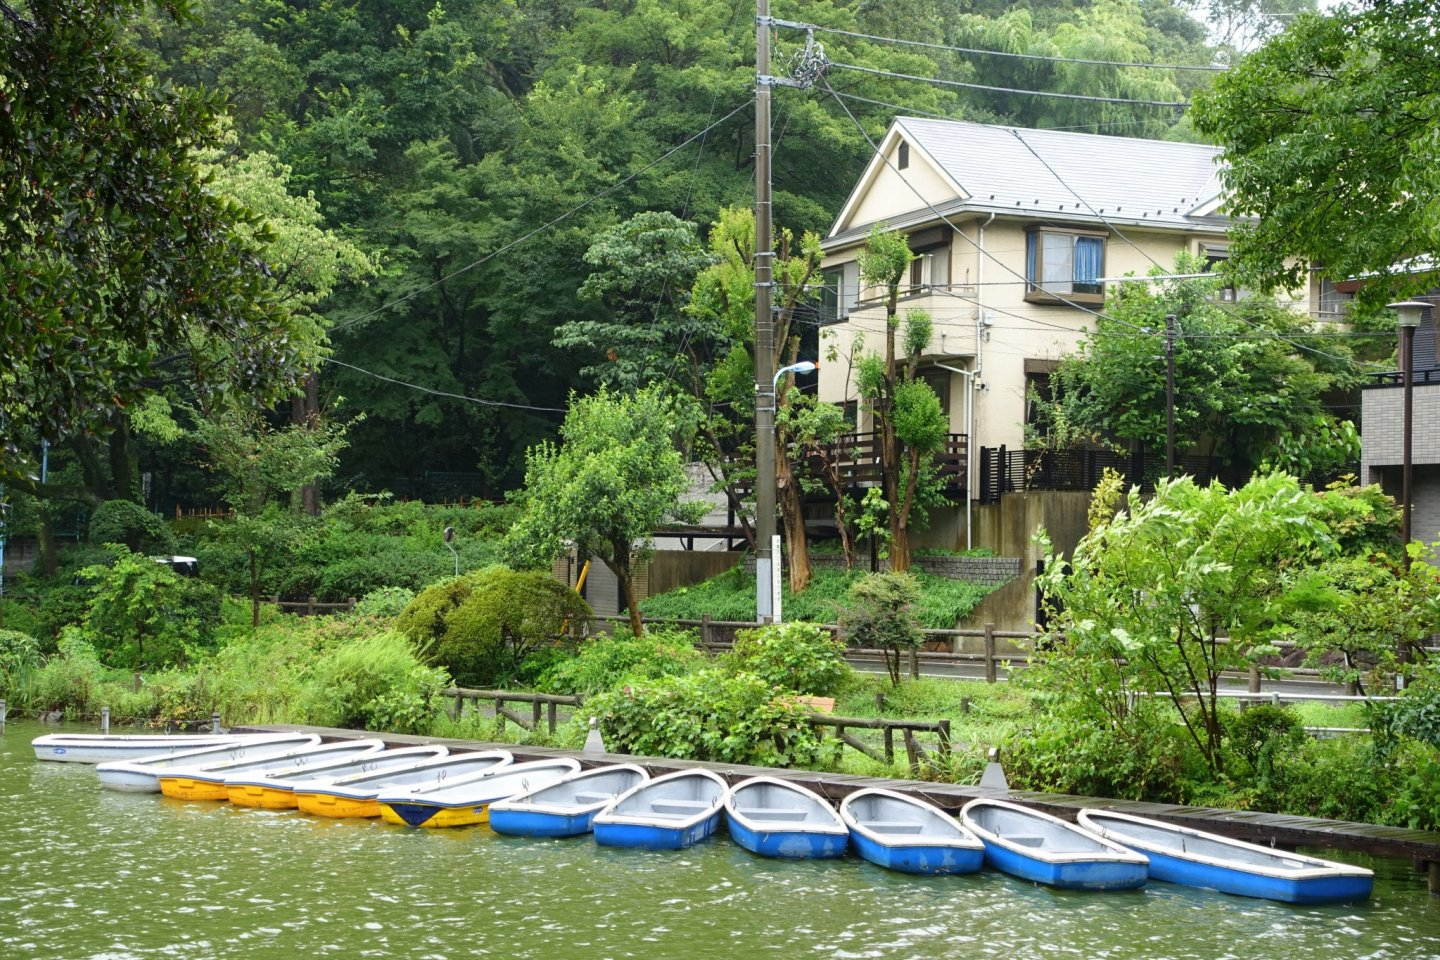 The boats of Zenpukuji Park